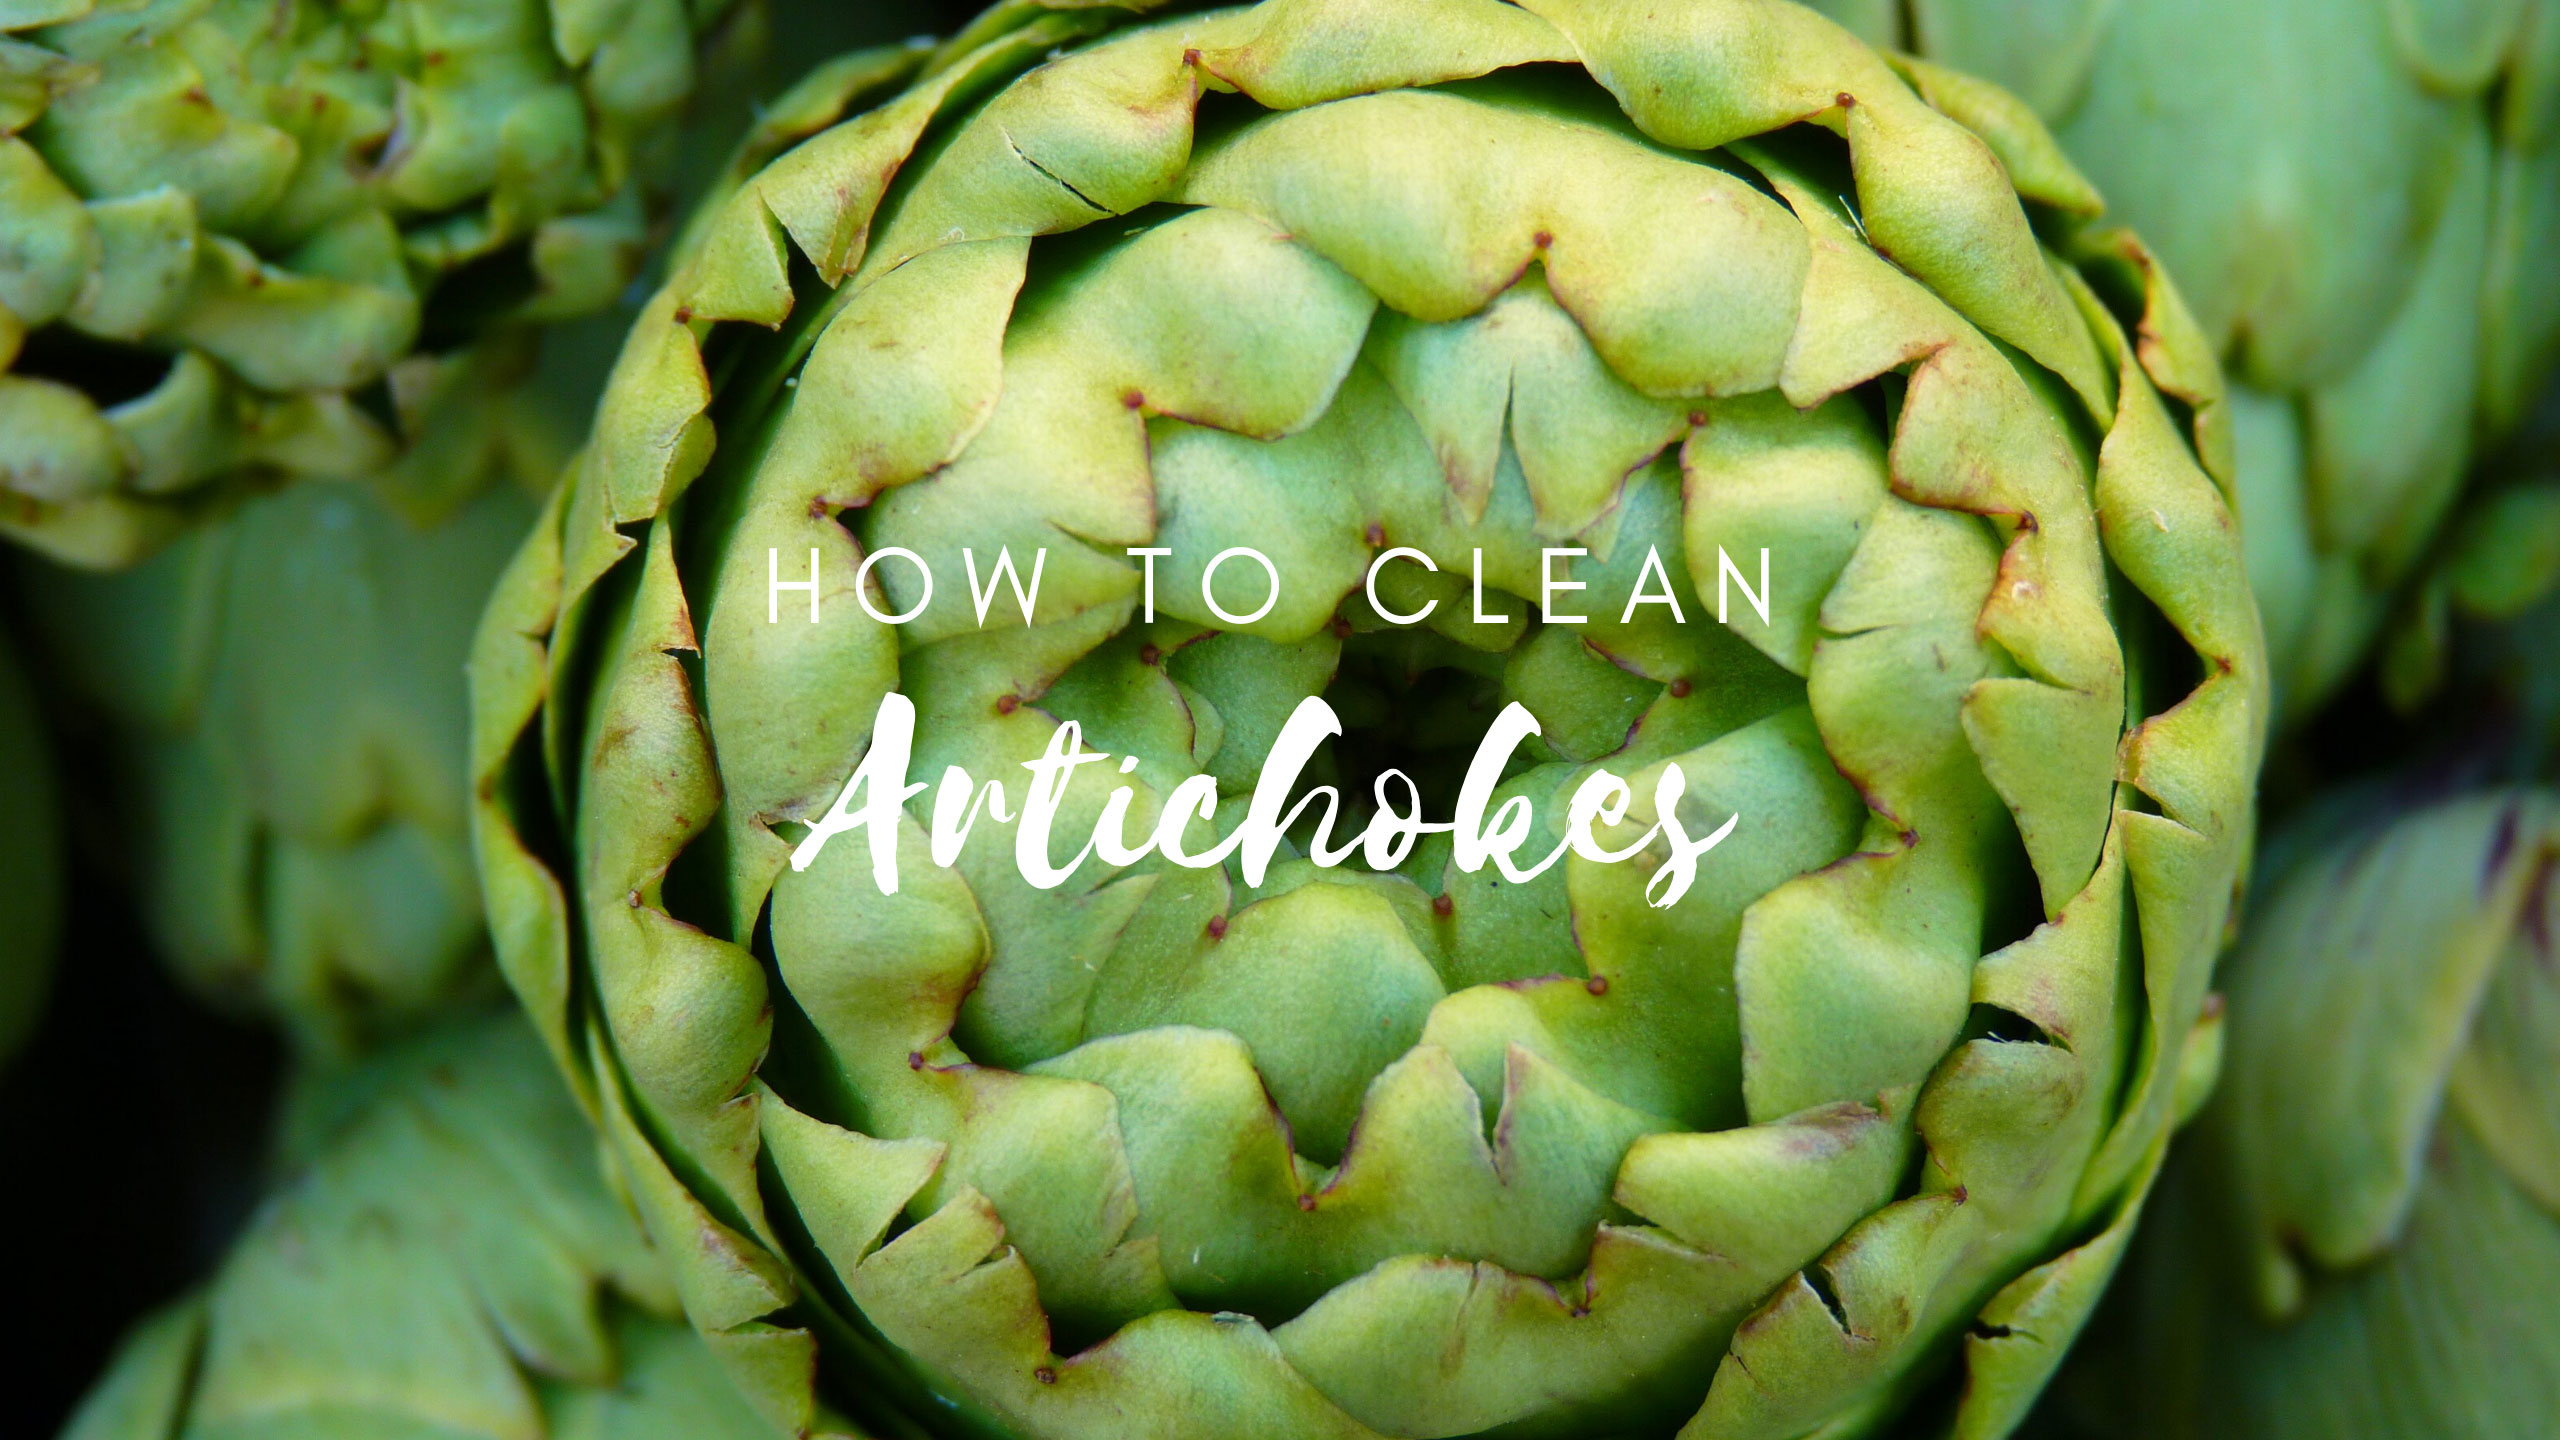 how to clean artichokes